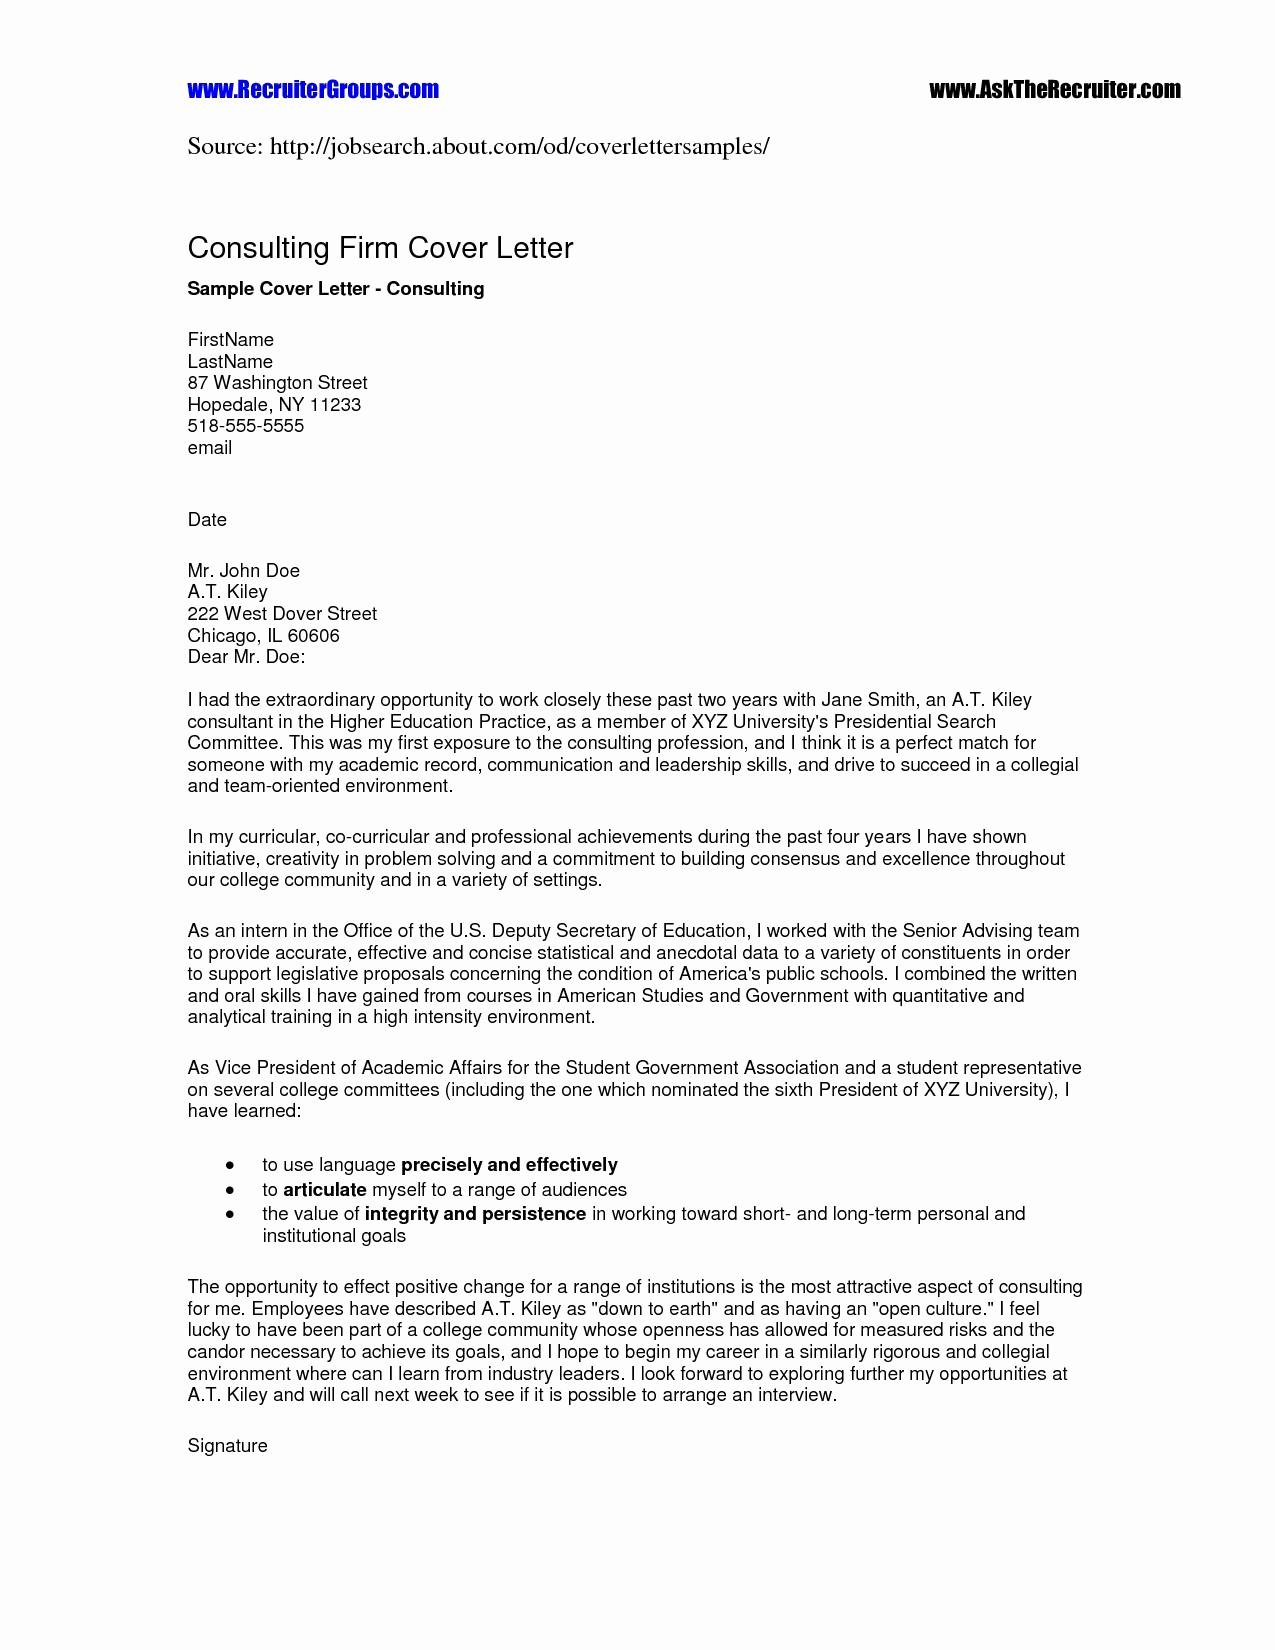 Reference Letter format Template - Certificate Good Moral Character Template Unique 30 Inspirational